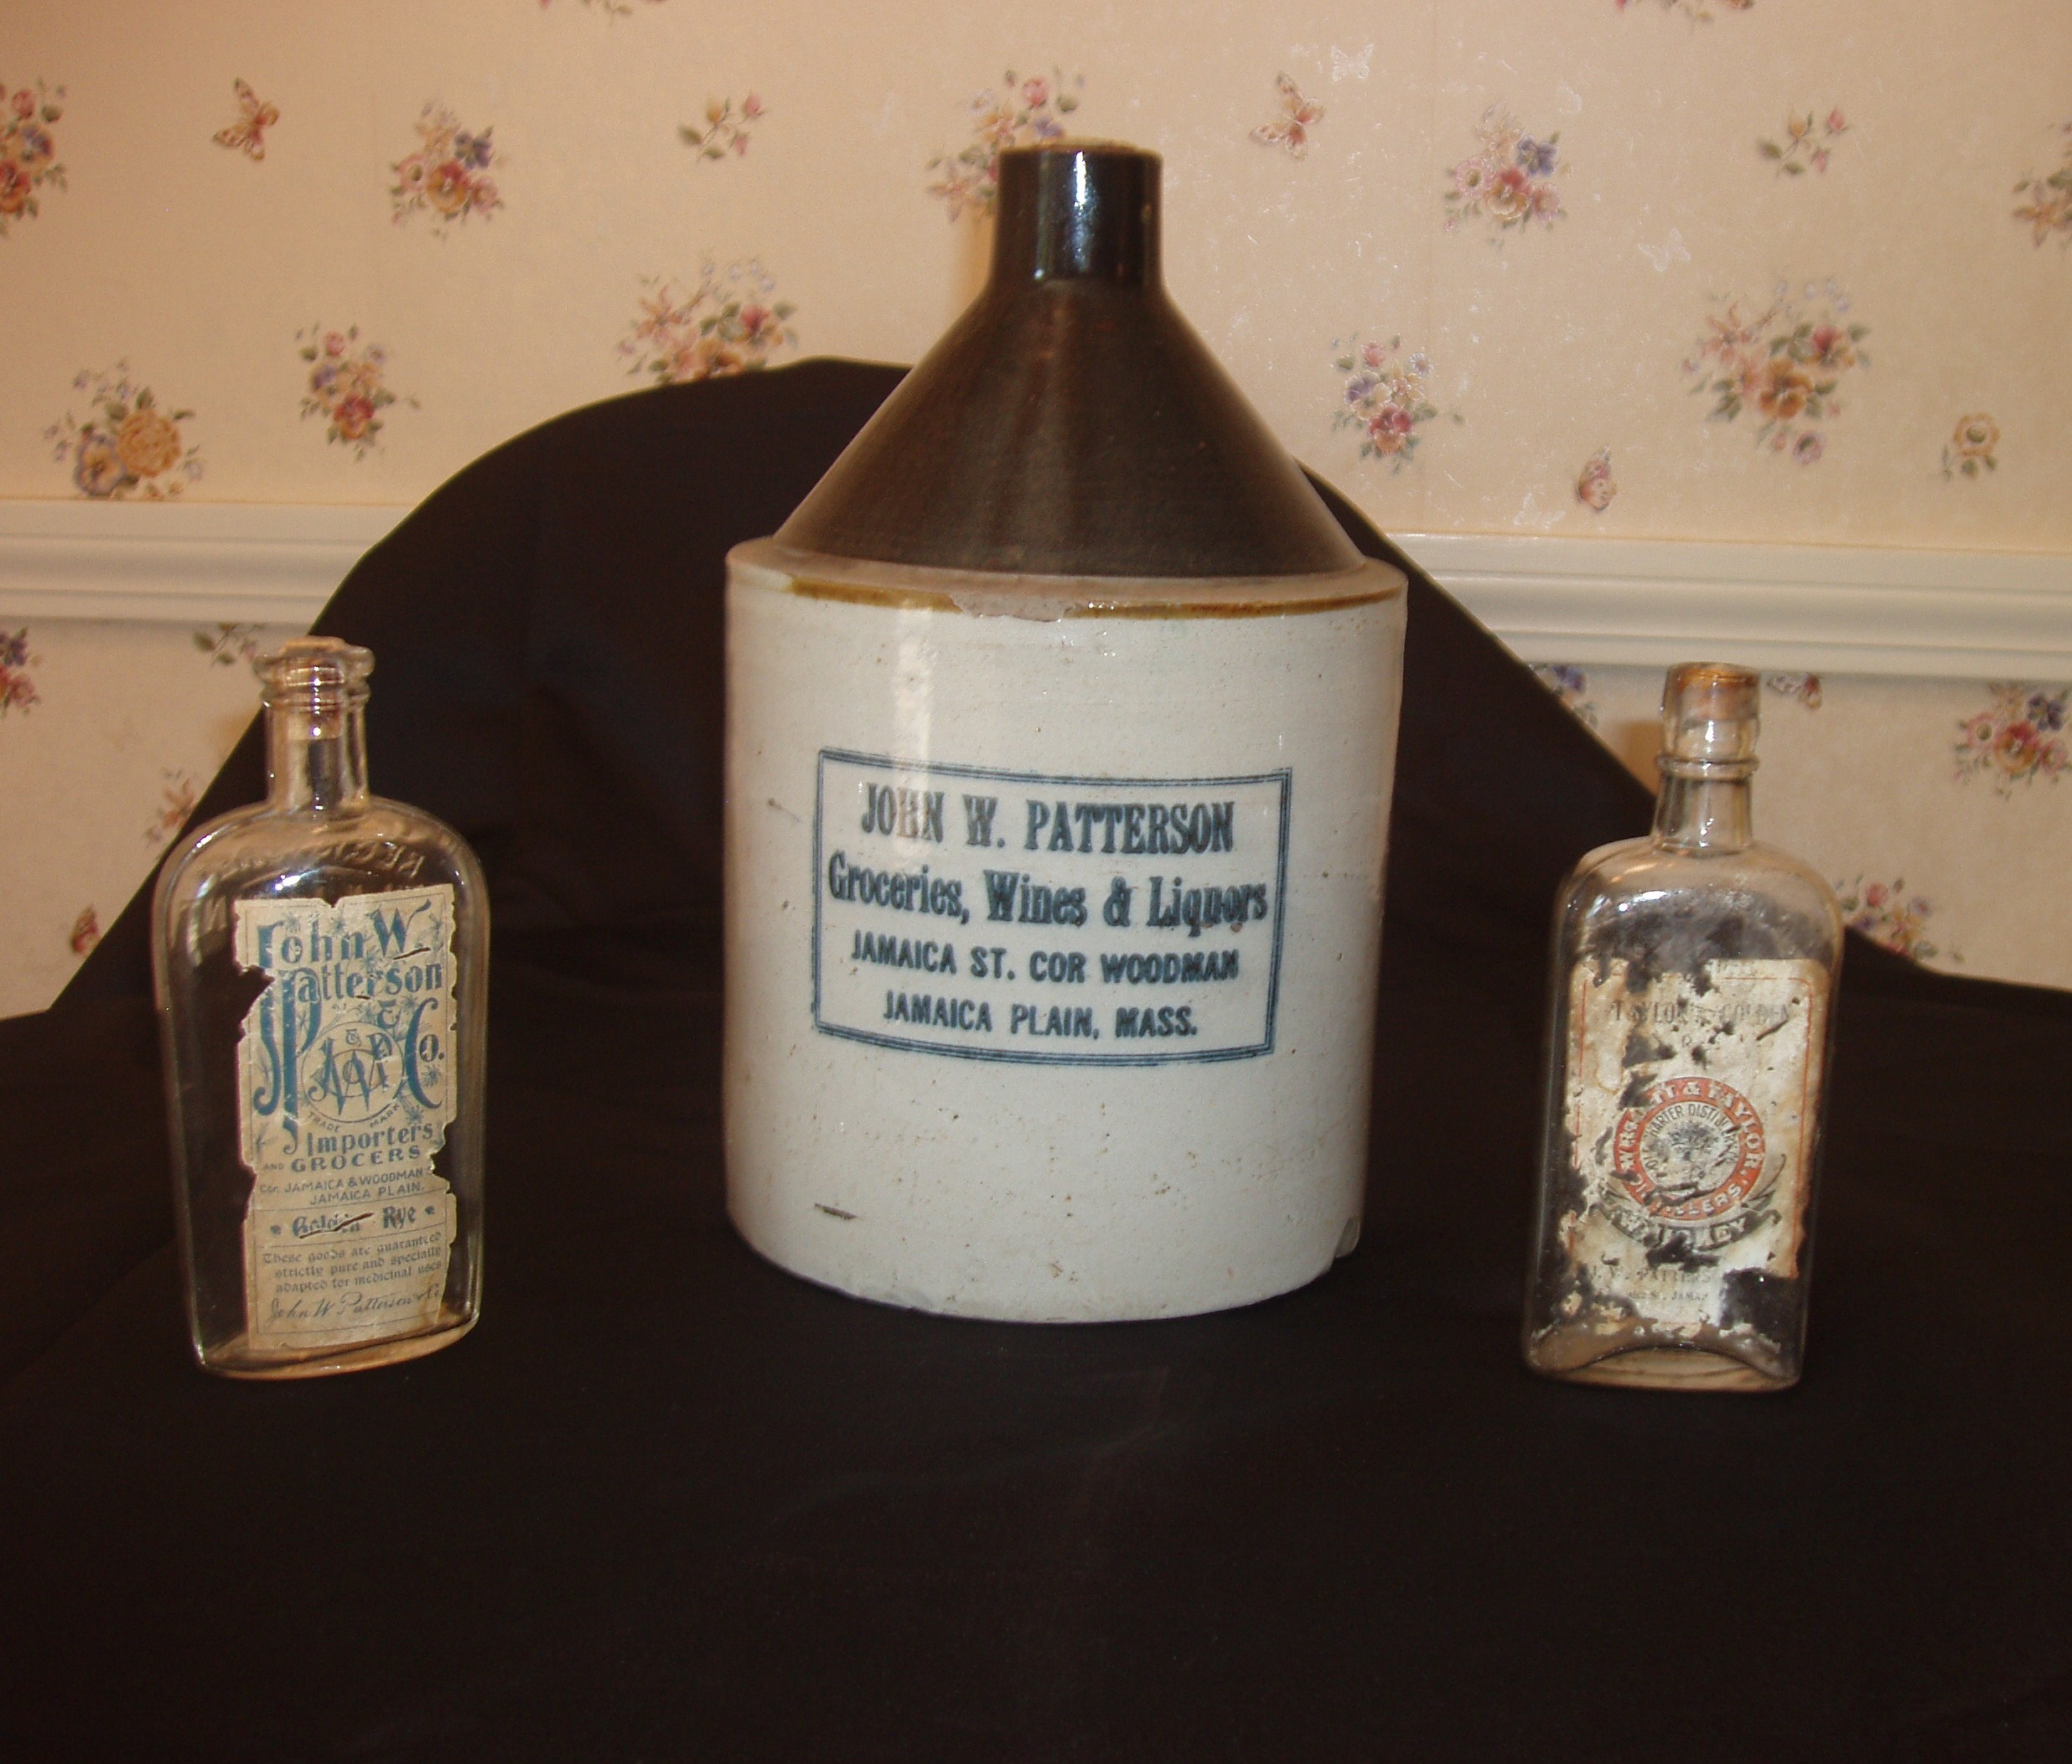 Patterson Market branded whiskey and rye bottles shown on both sides of a Patterson branded jug. Courtesy of the Patterson family.